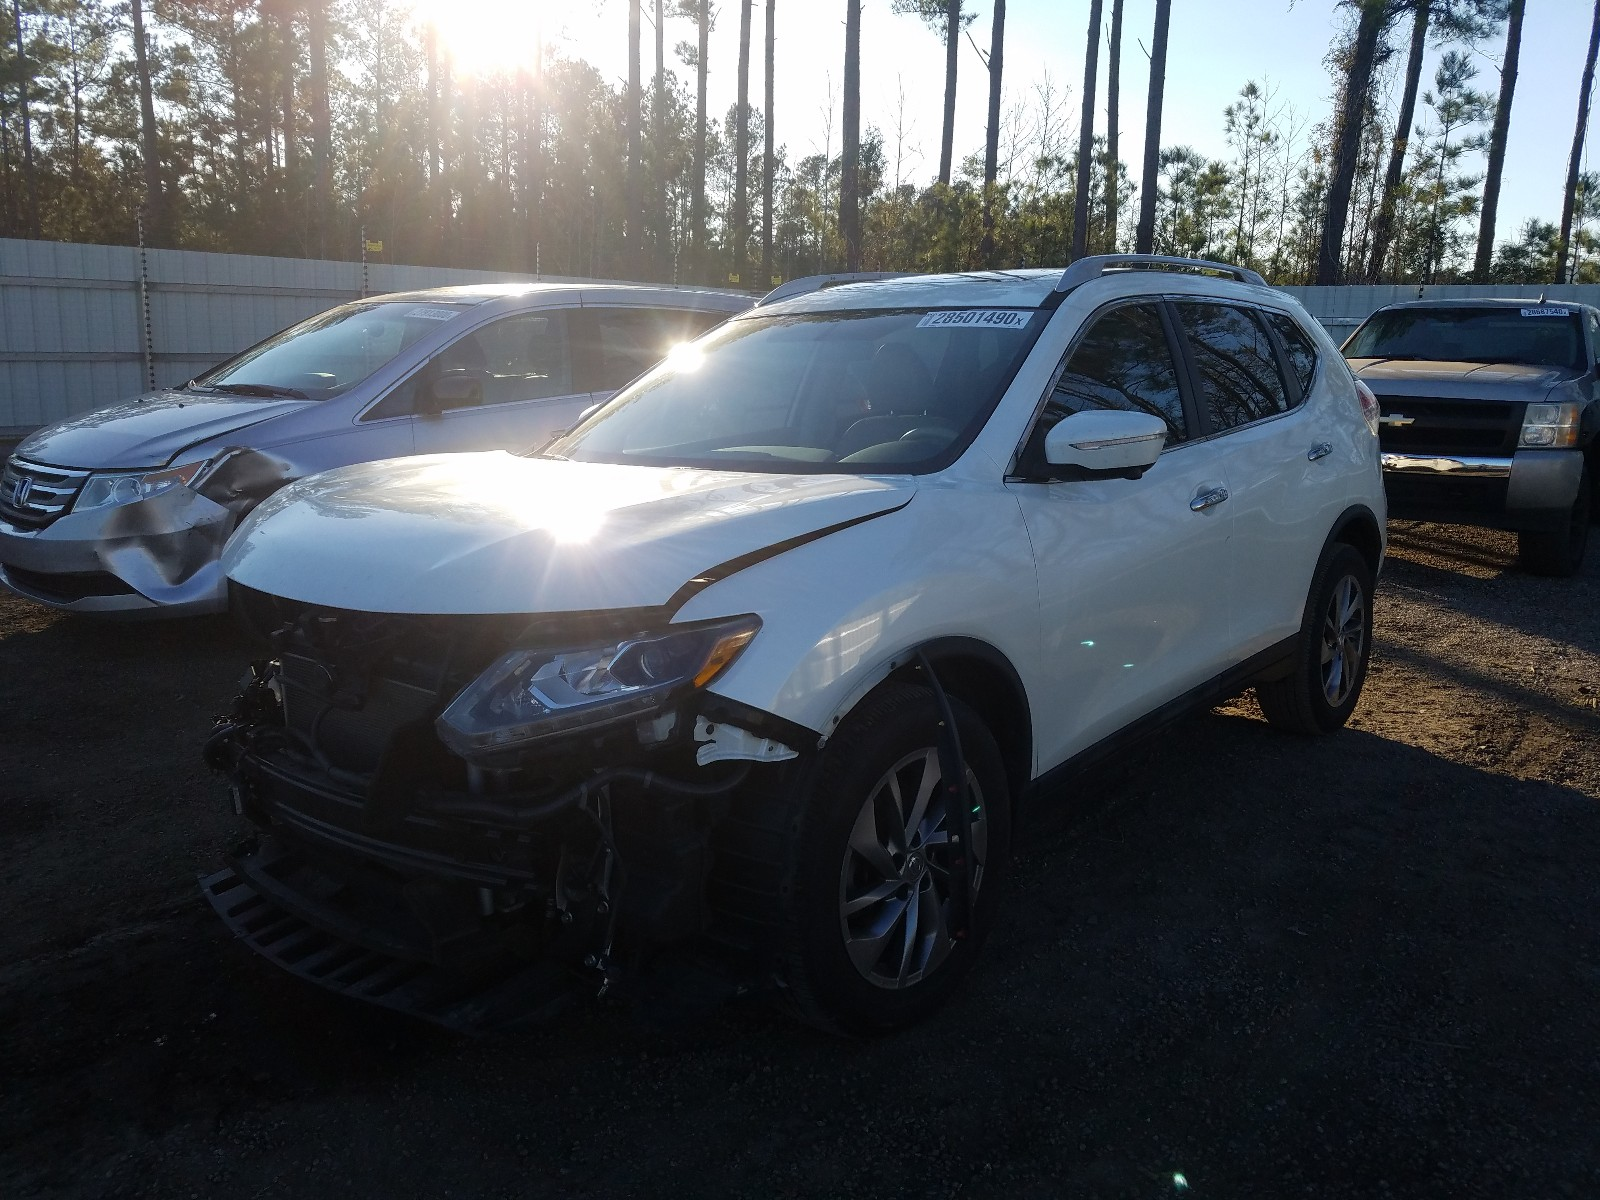 5N1AT2MT0FC814115 - 2015 Nissan Rogue S 2.5L Right View